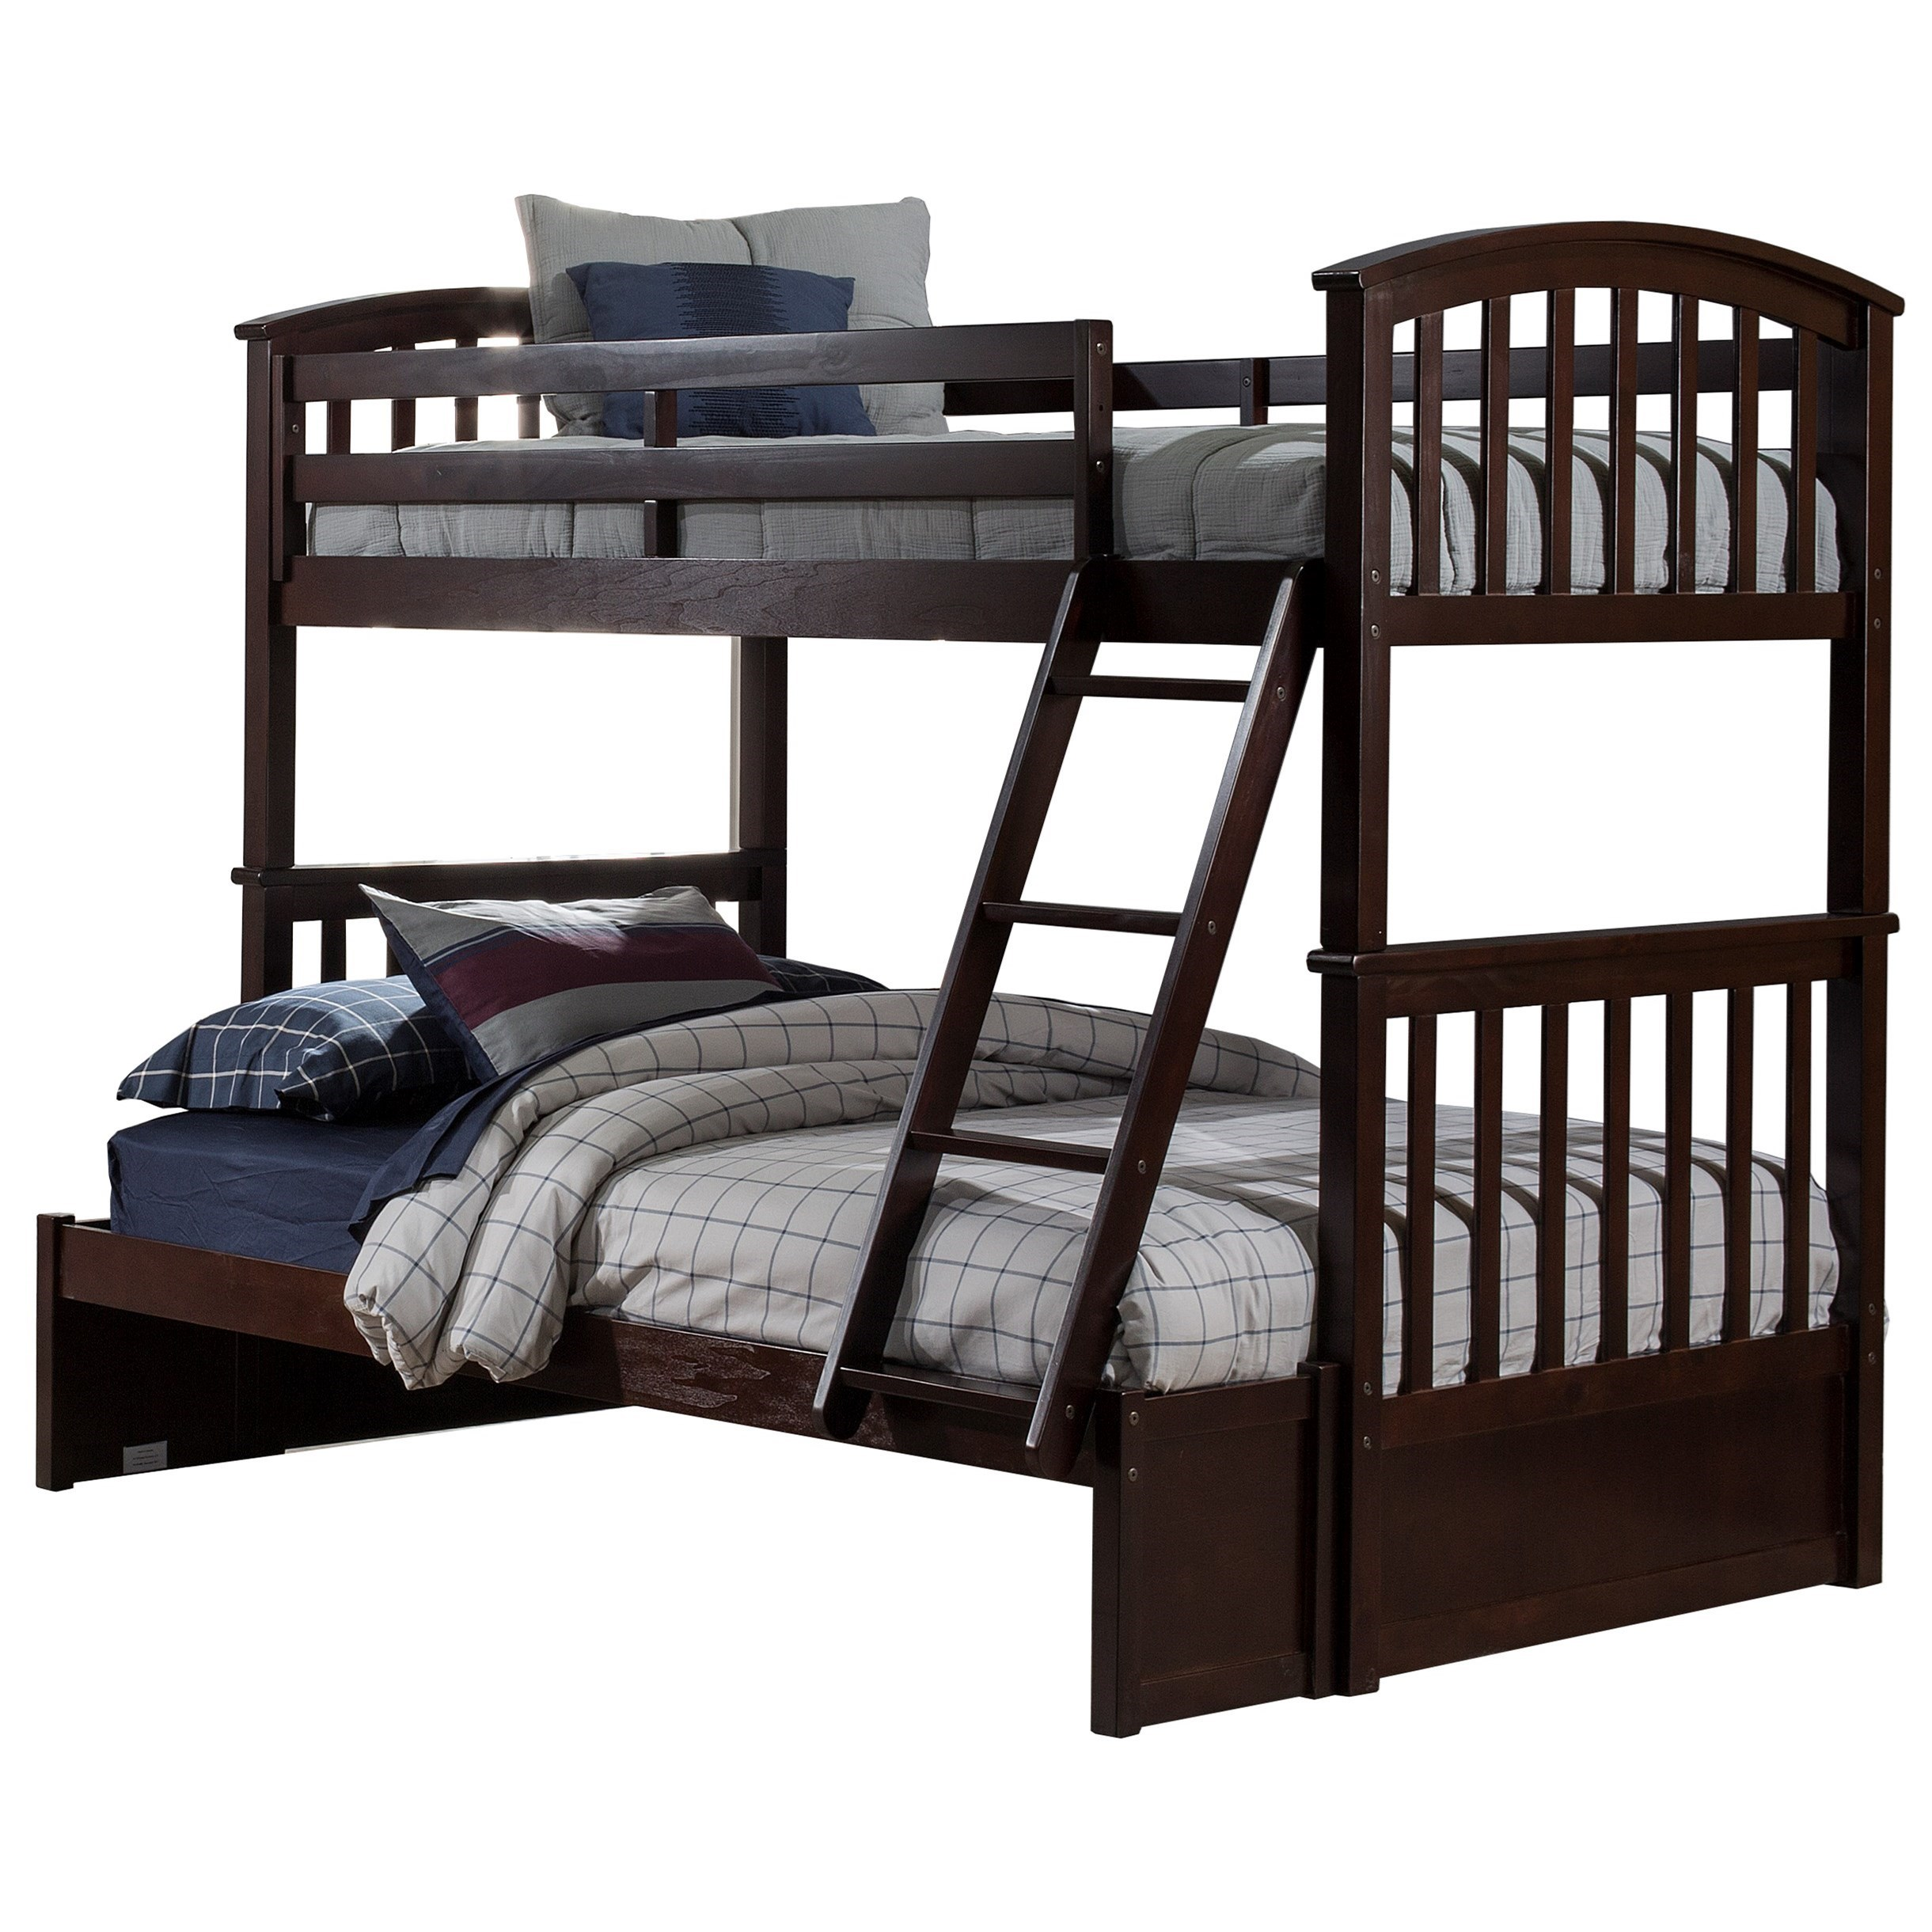 Schoolhouse 4.0 Twin Over Full Bunk Bed by NE Kids at Goffena Furniture & Mattress Center